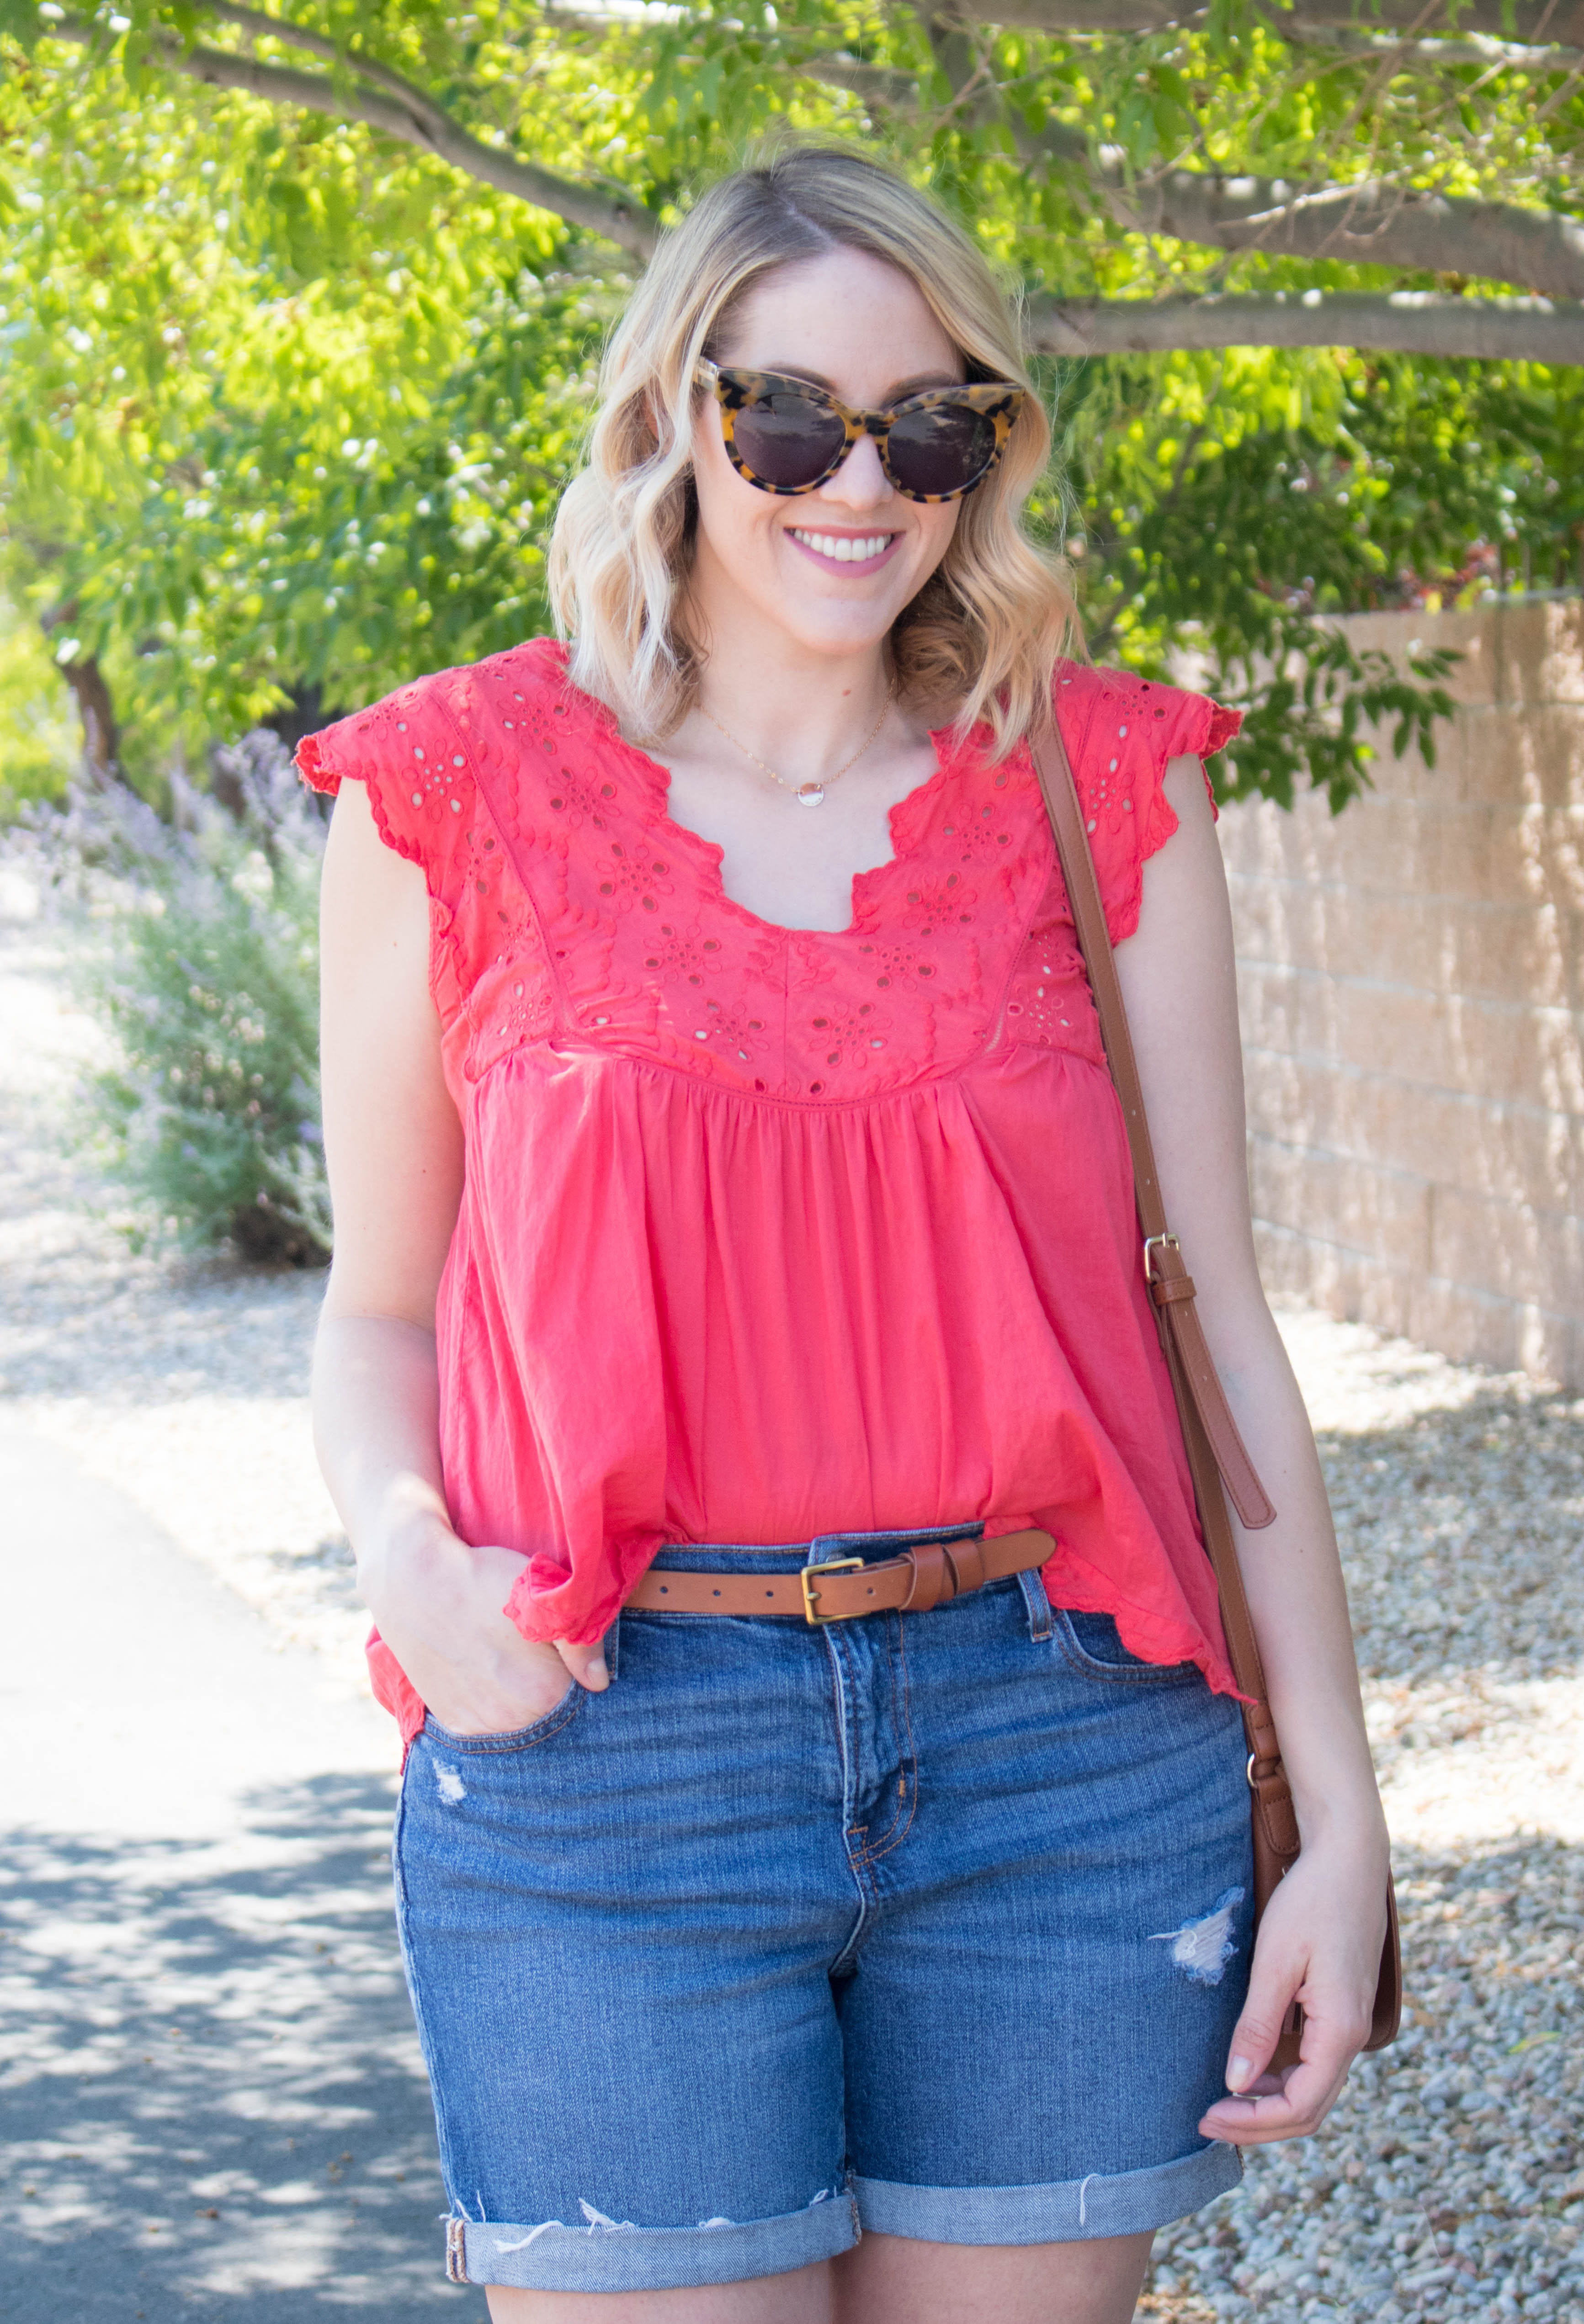 cute summer outfit ideas with shorts #shorts #summerstyle #momshorts